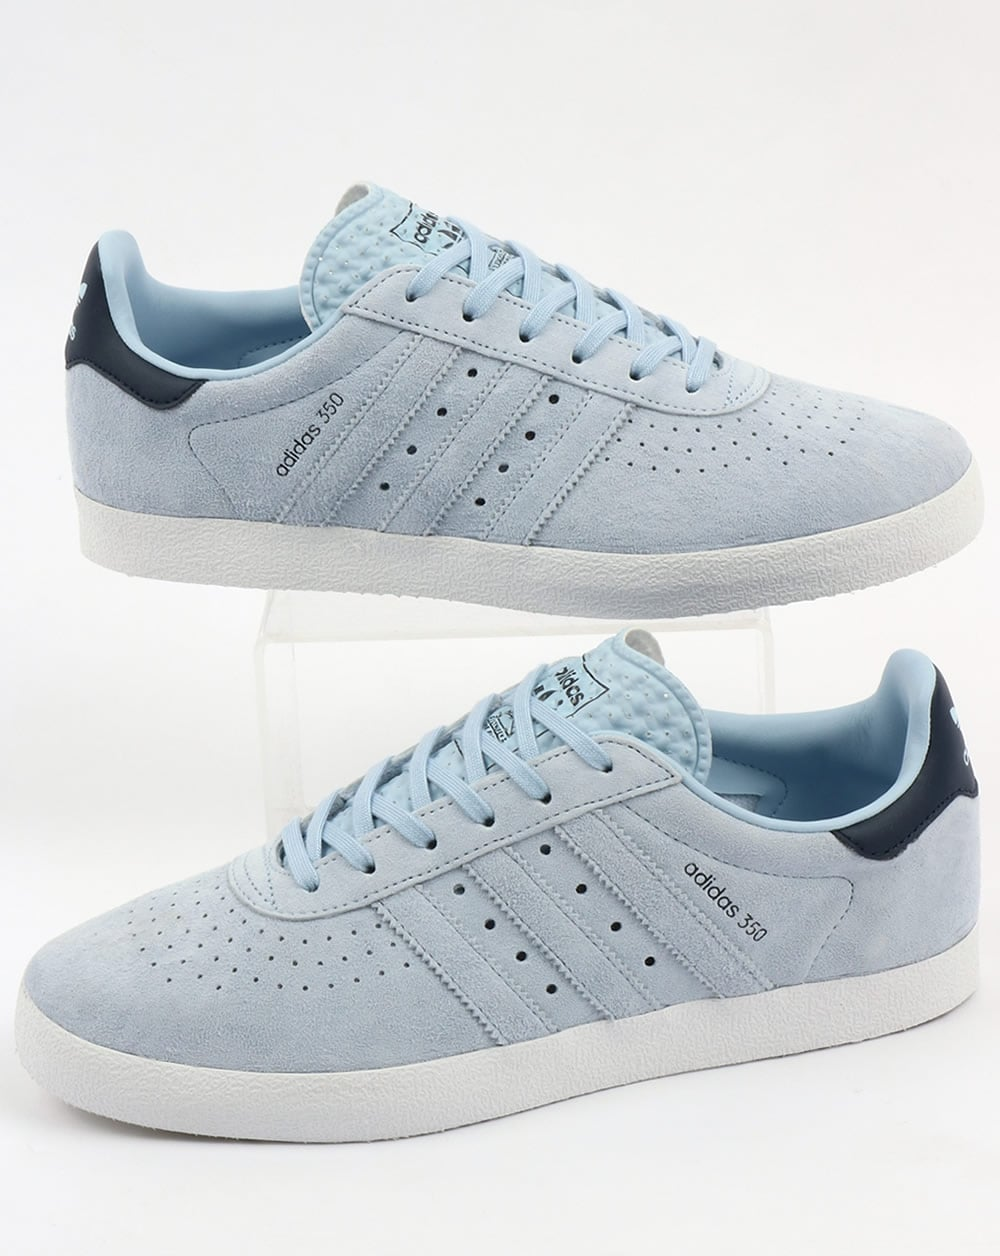 Adidas Originals Originals Top Ten Low Sneaker In Black: Adidas 350 Trainers Sky, Blue,shoes,originals,mens, Easy